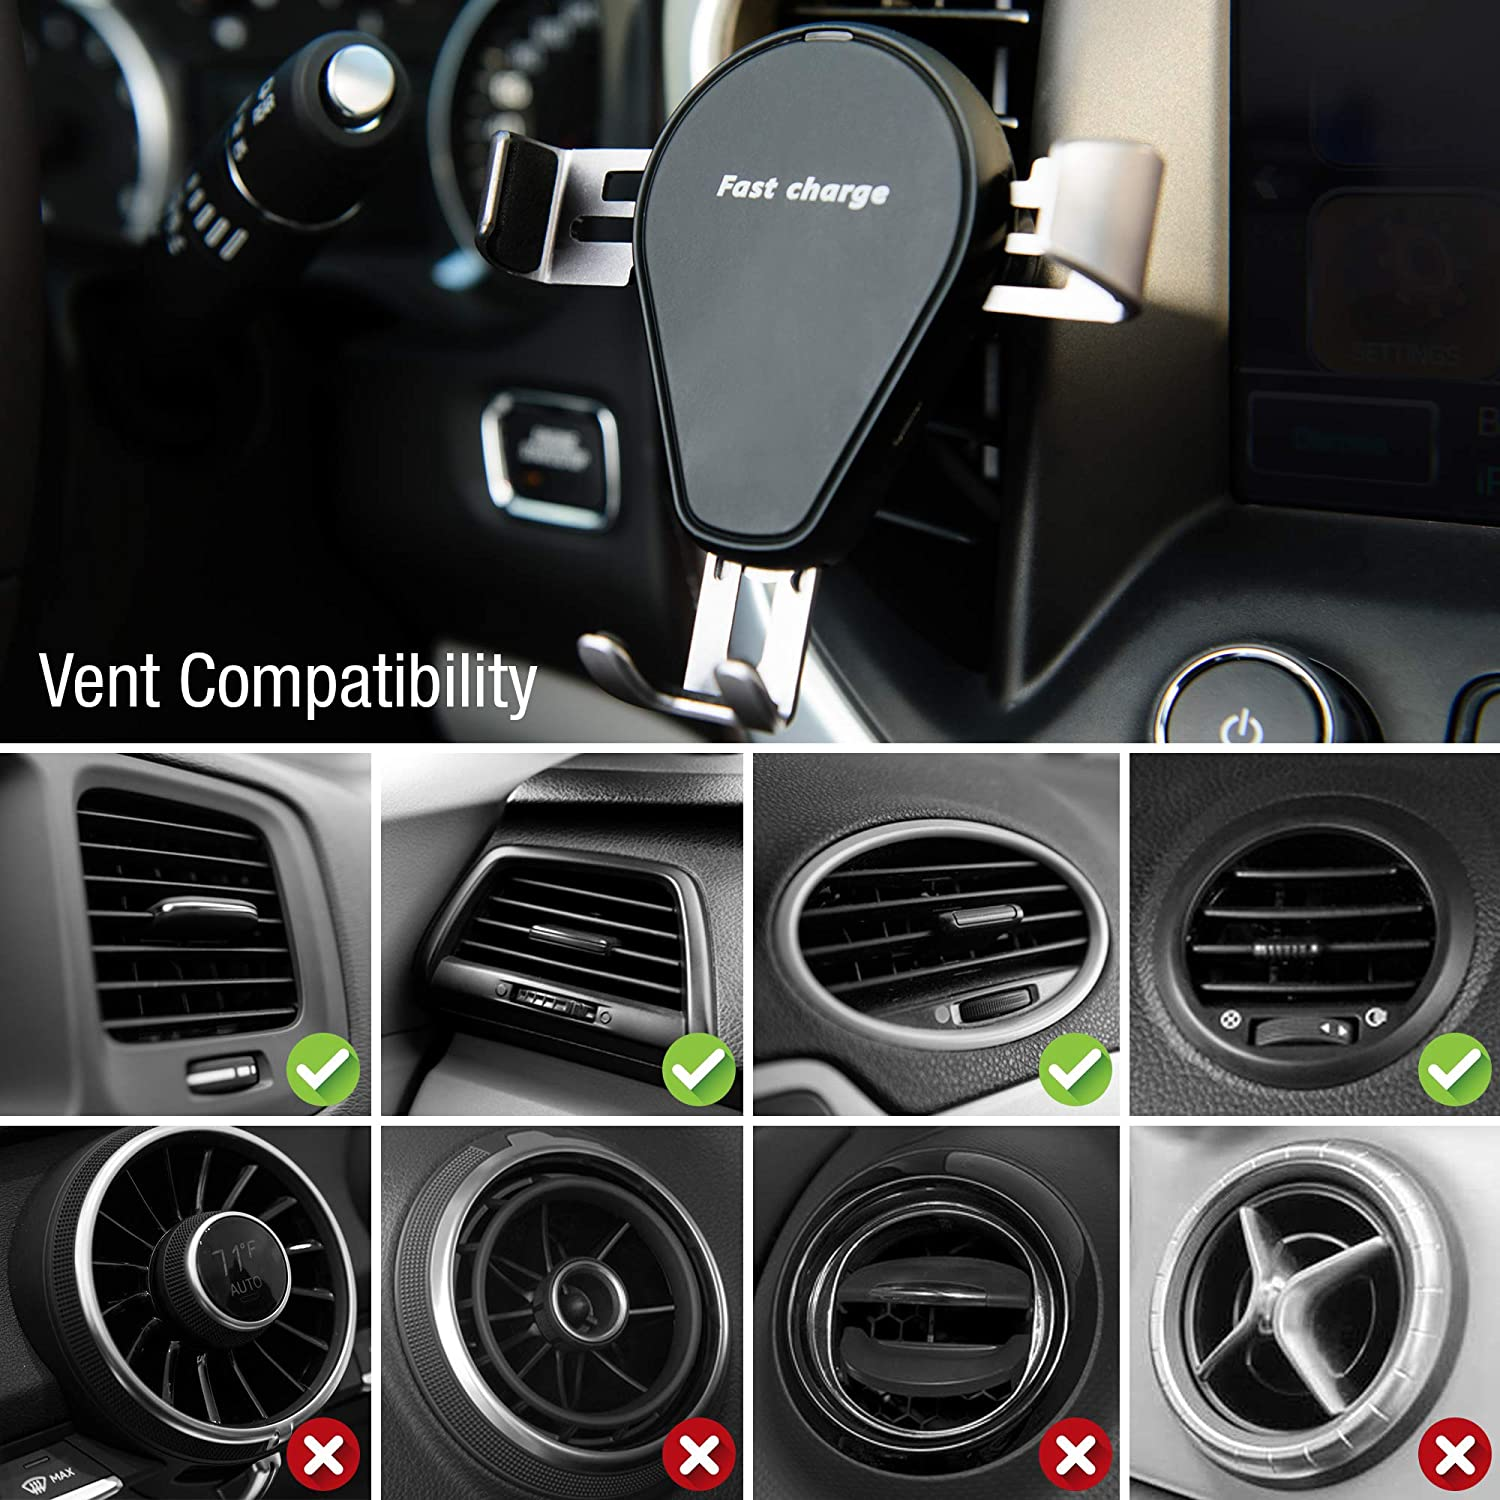 Samsung Galaxy S9//S9+//S8//S8+//S7//Note 8 /& More Fast Charging Compatible with iPhone X Qi Certified iPhone 8//8 Plus Exuby 10W Wireless Car Charger Air Vent Attachment 1-Handed Operation